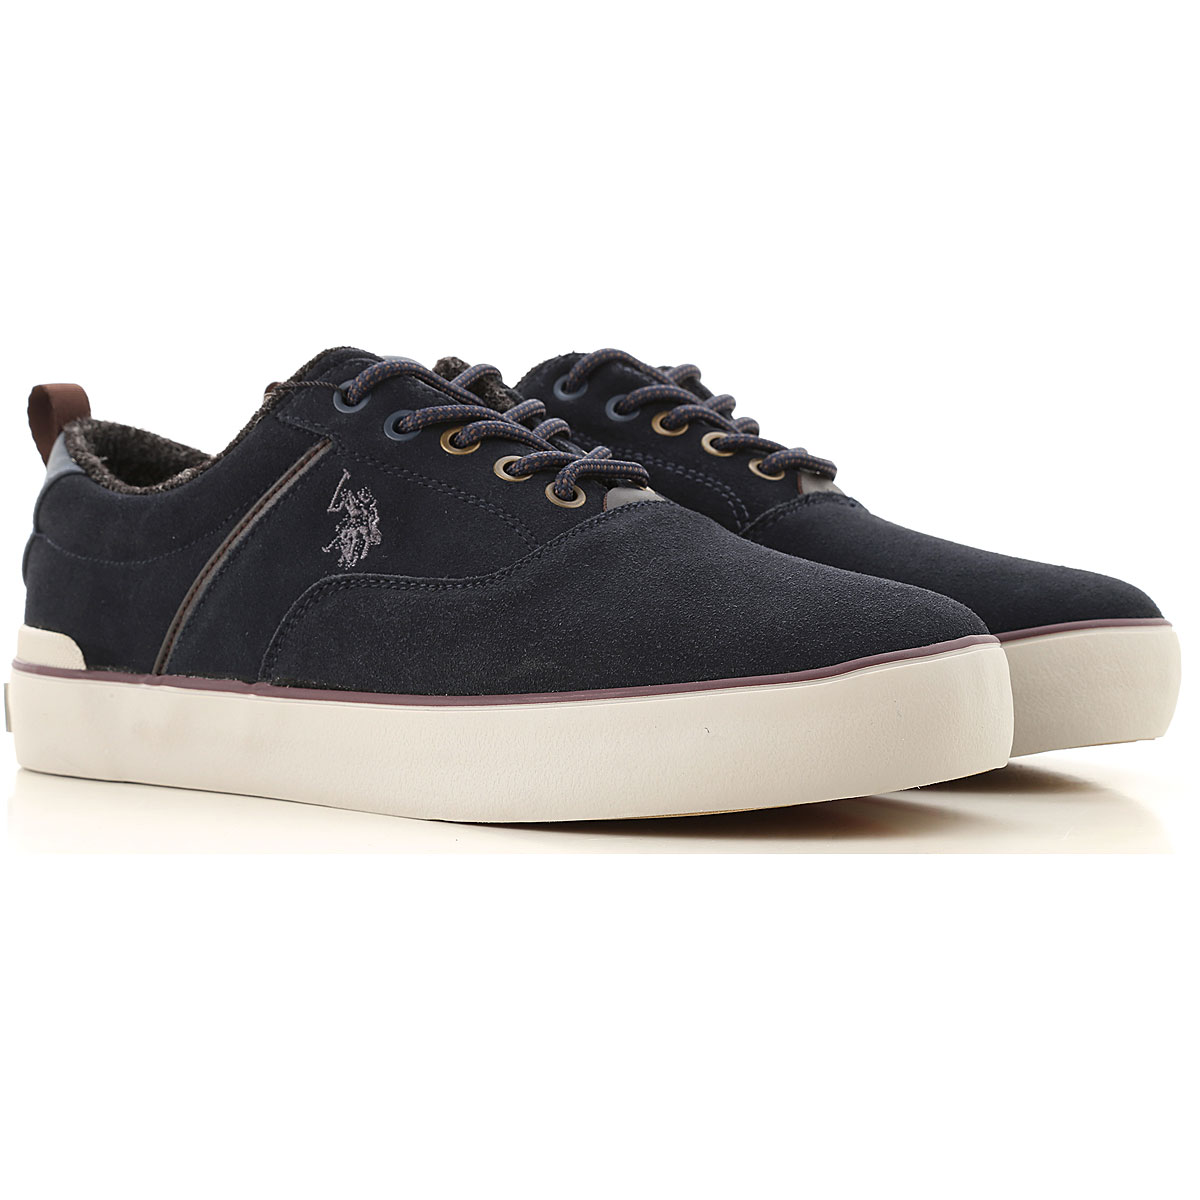 U.S. Polo Sneakers for Men On Sale, navy, Soft Suede Leather, 2019, 10 7 8 9